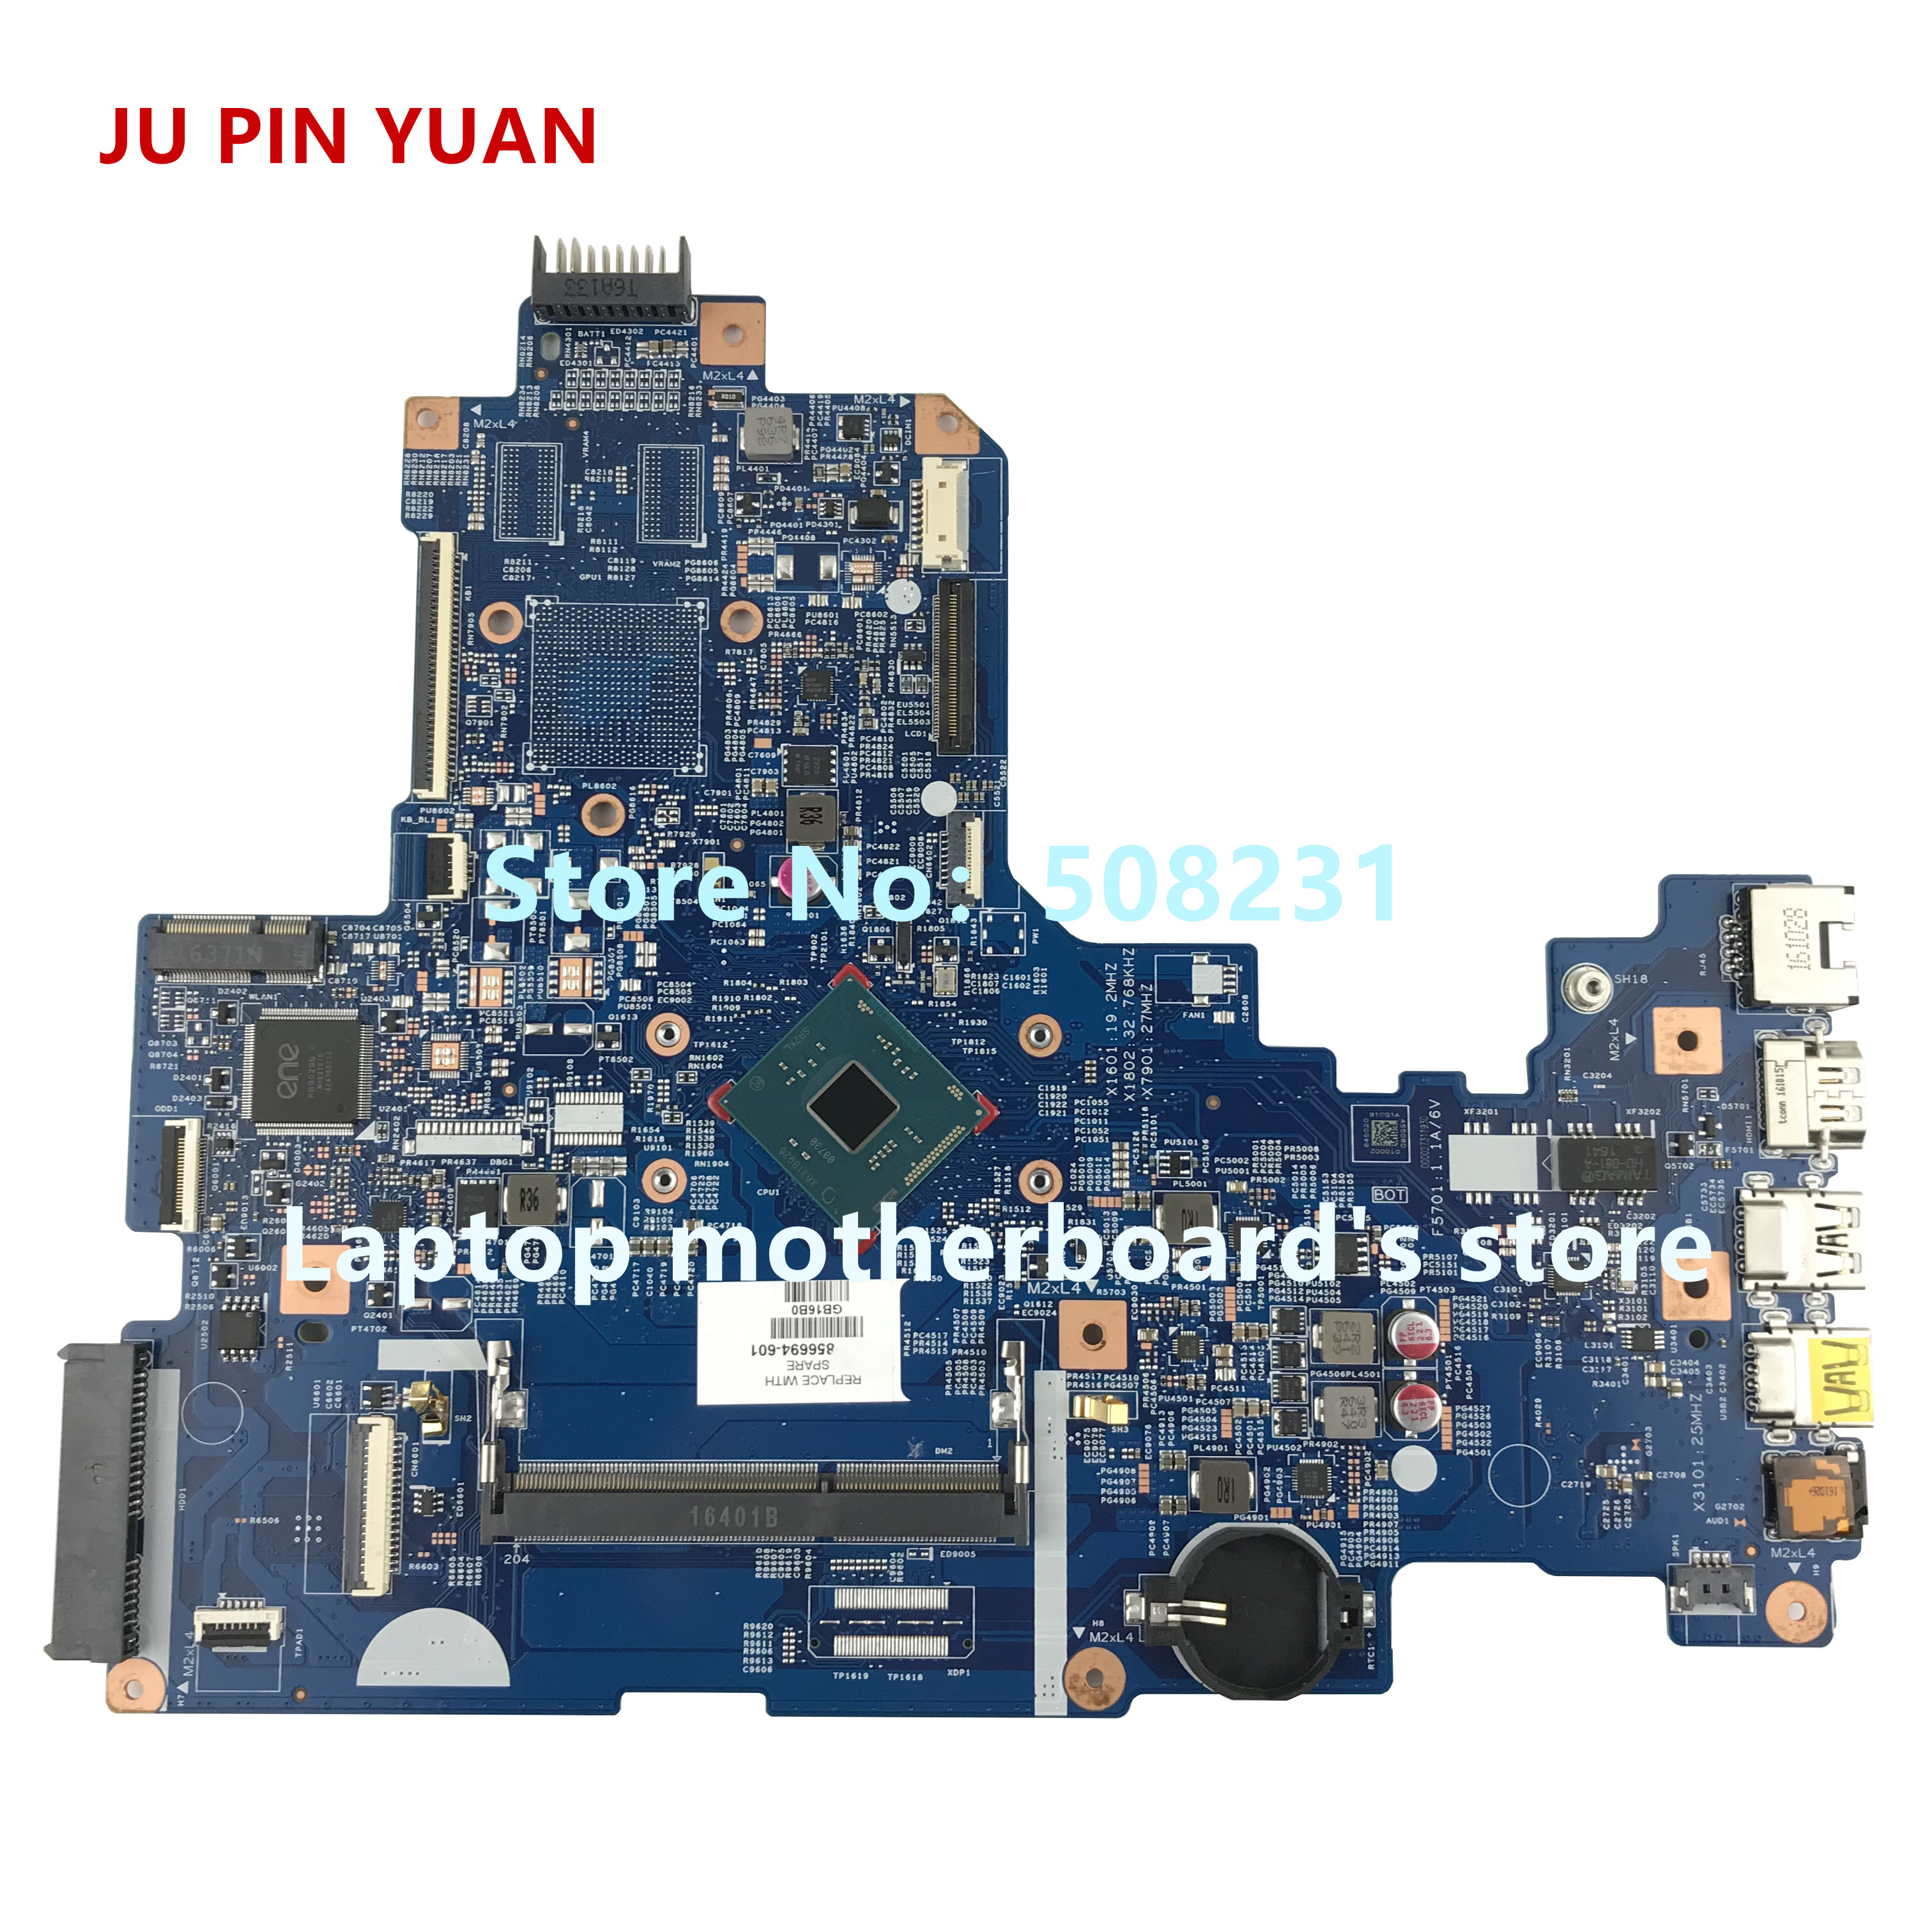 JU PIN YUAN 856694-601 15288-1 448.08D01.0011 For HP NOTEBOOK 17-X 17T-X 17-X010NR Laptop Motherboard With N3710 Fully Tested